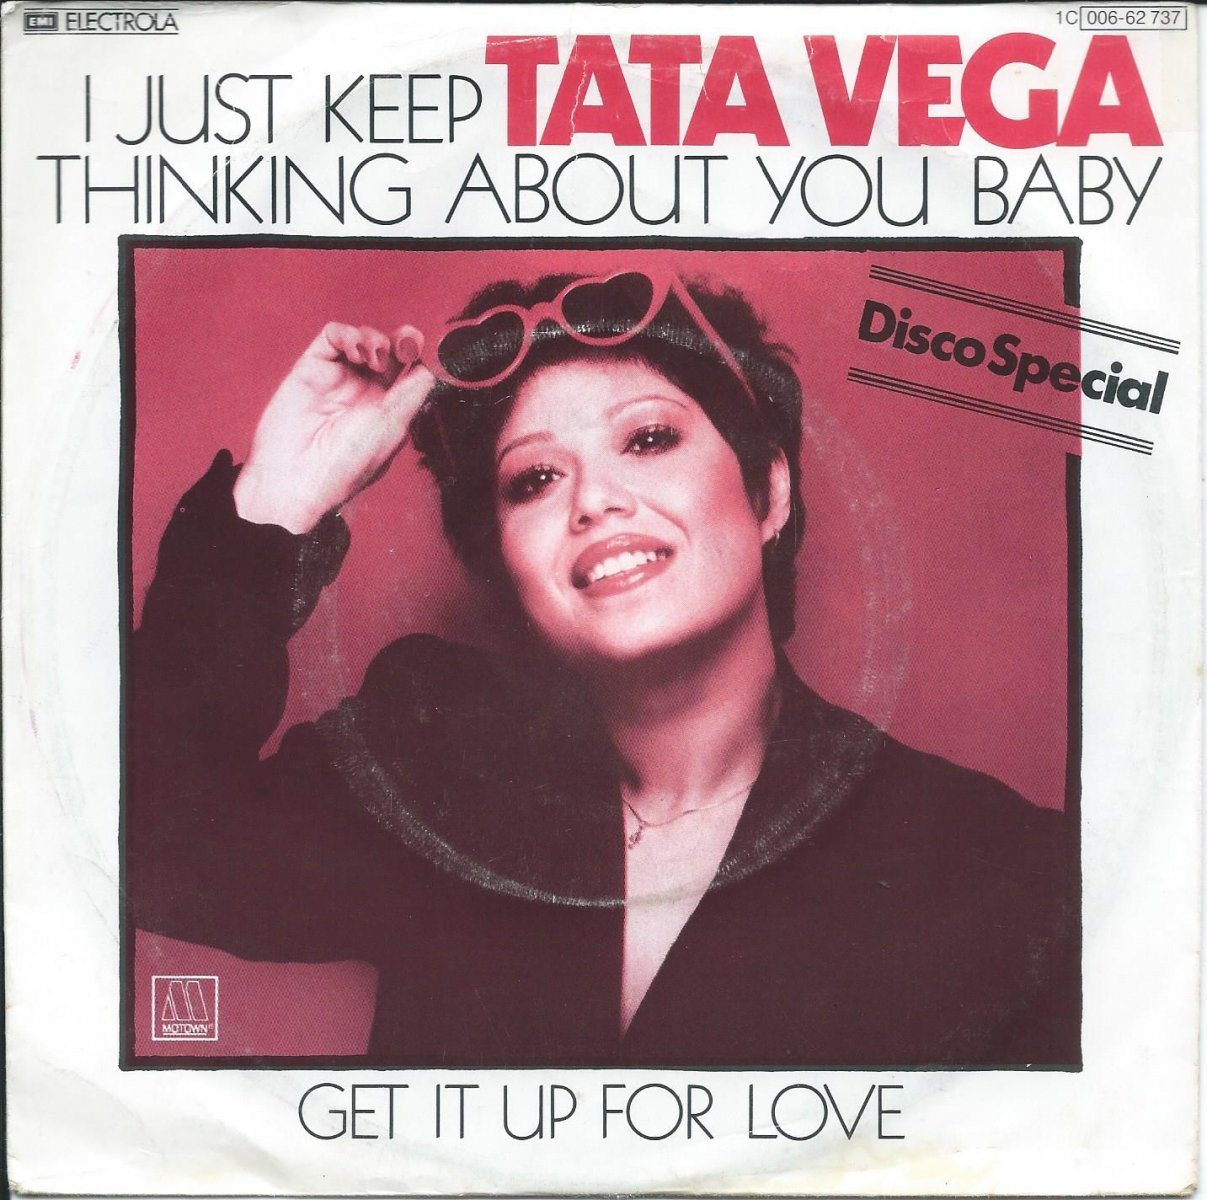 TATA VEGA / I JUST KEEP THINKING ABOUT YOU BABY / GET IT UP FOR LOVE (7